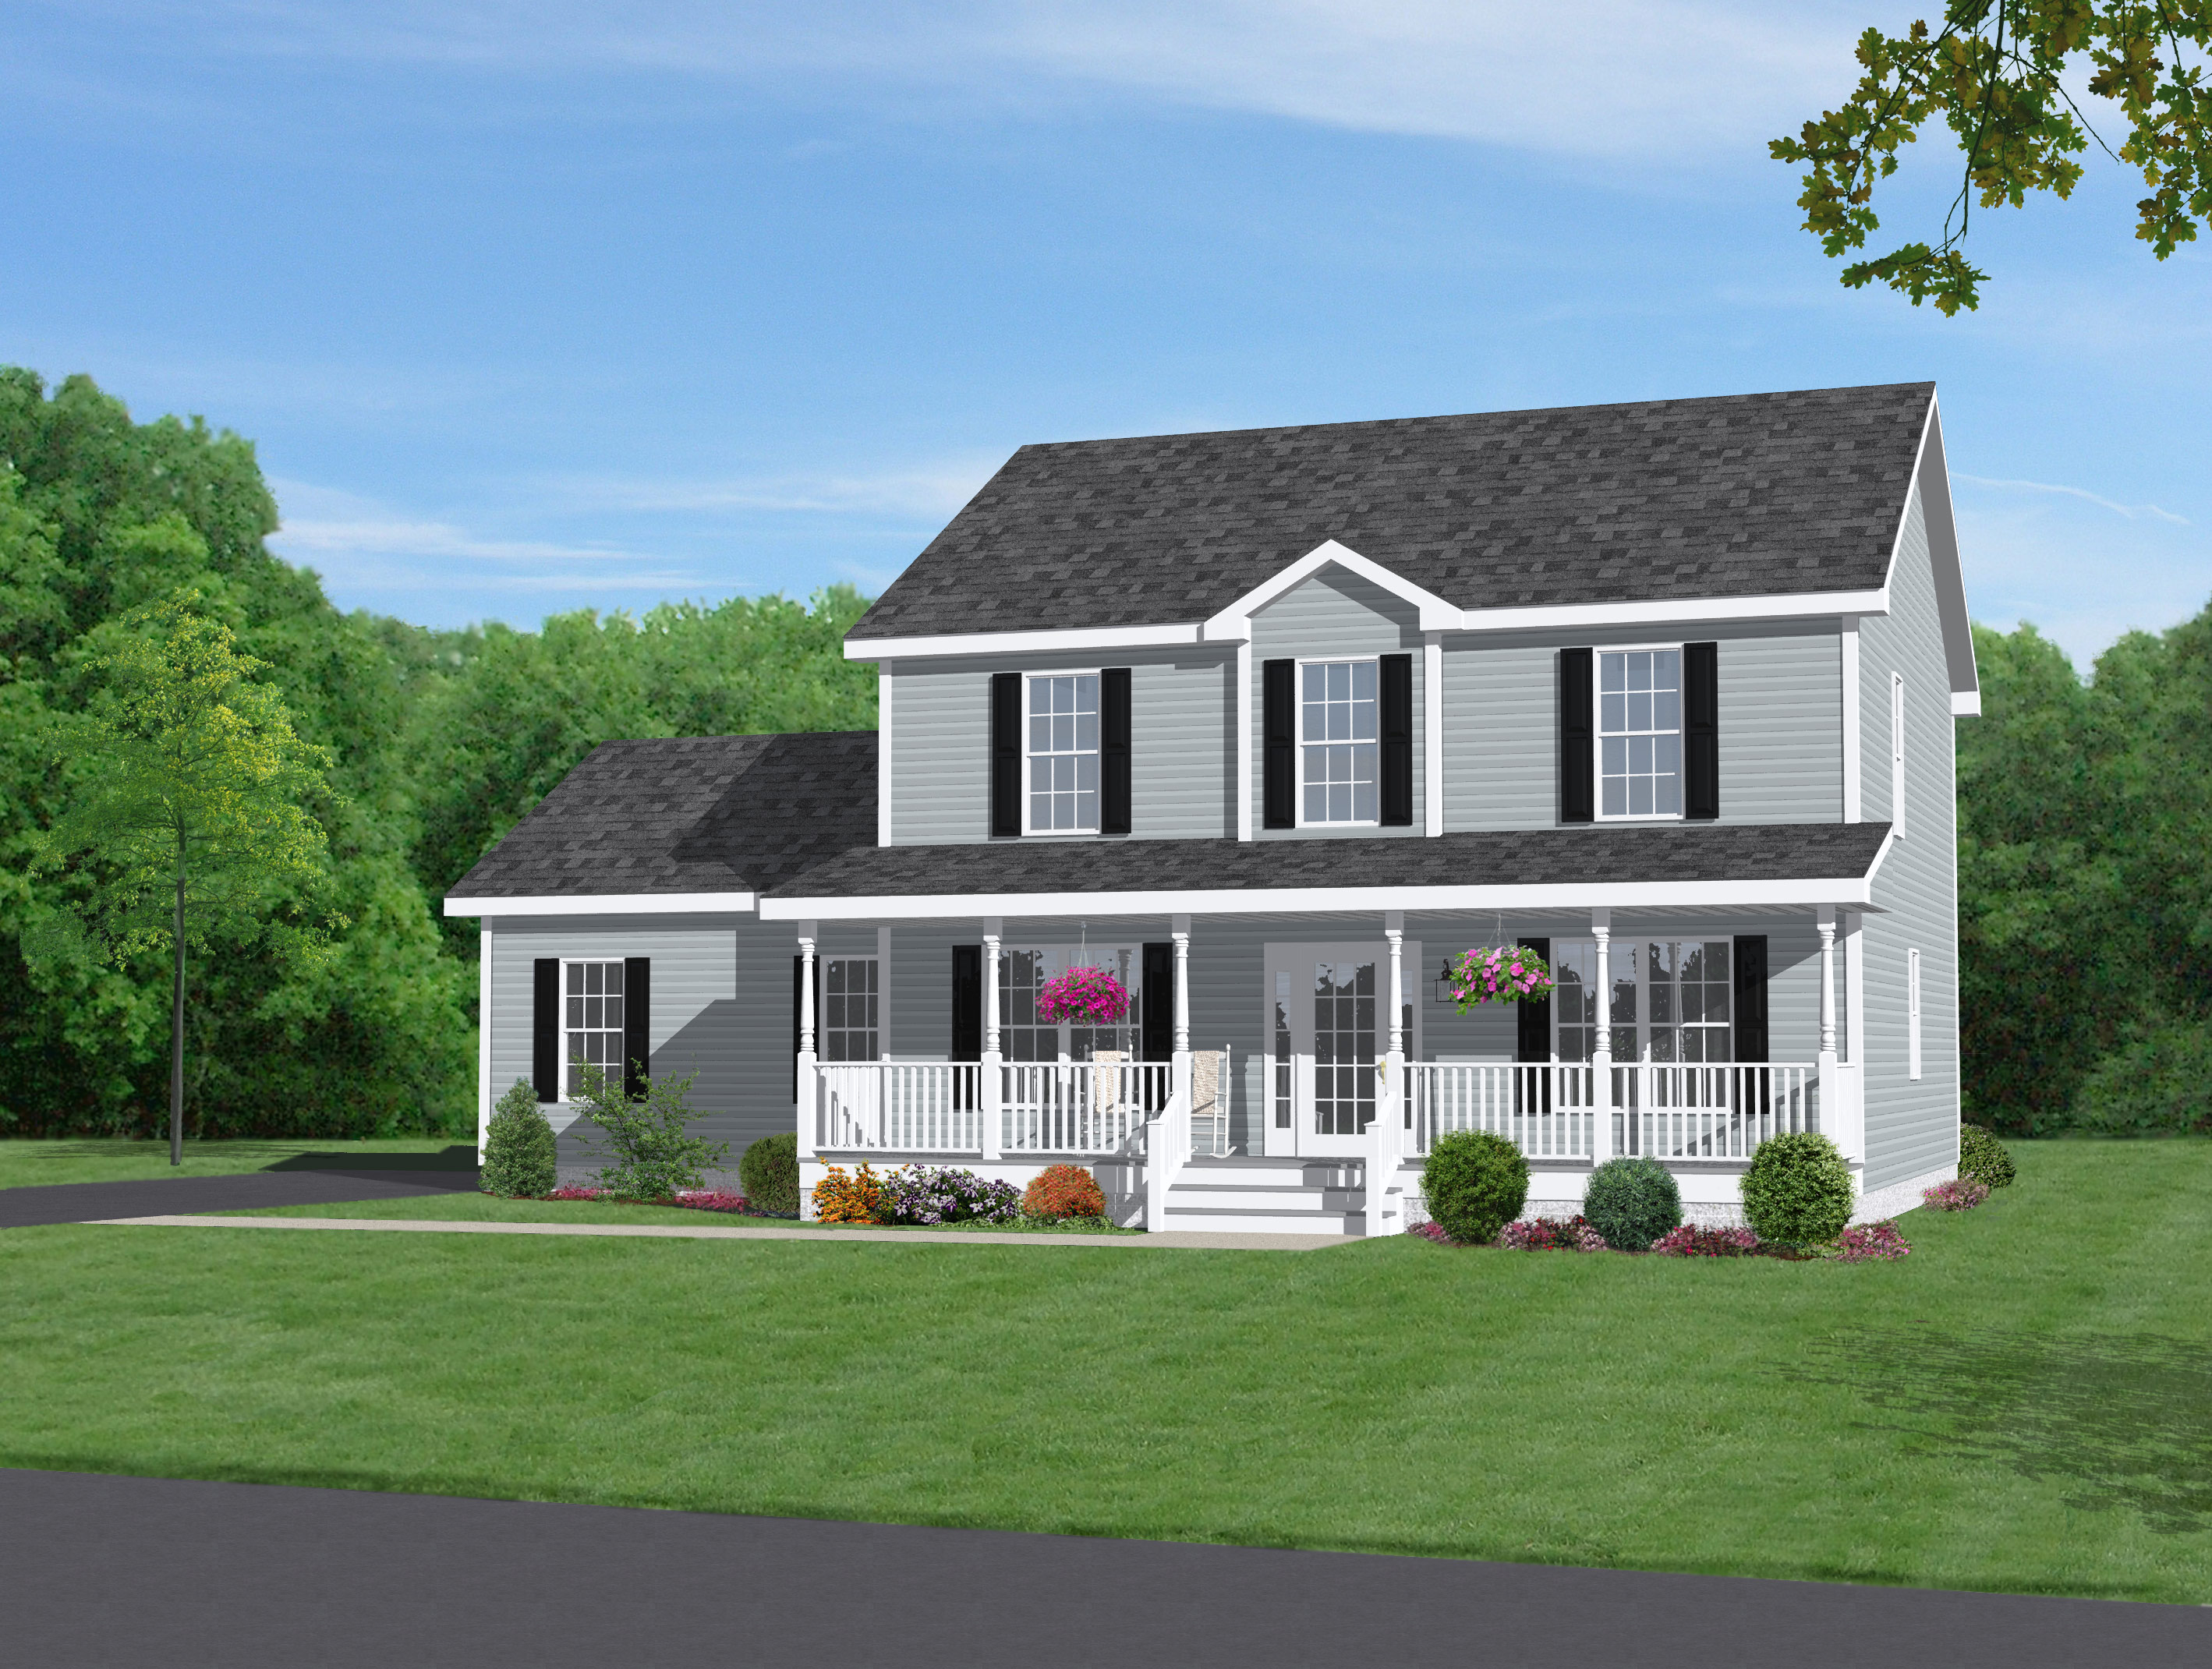 2 story house plans with wrap around porch 2 story house for Two story house with wrap around porch